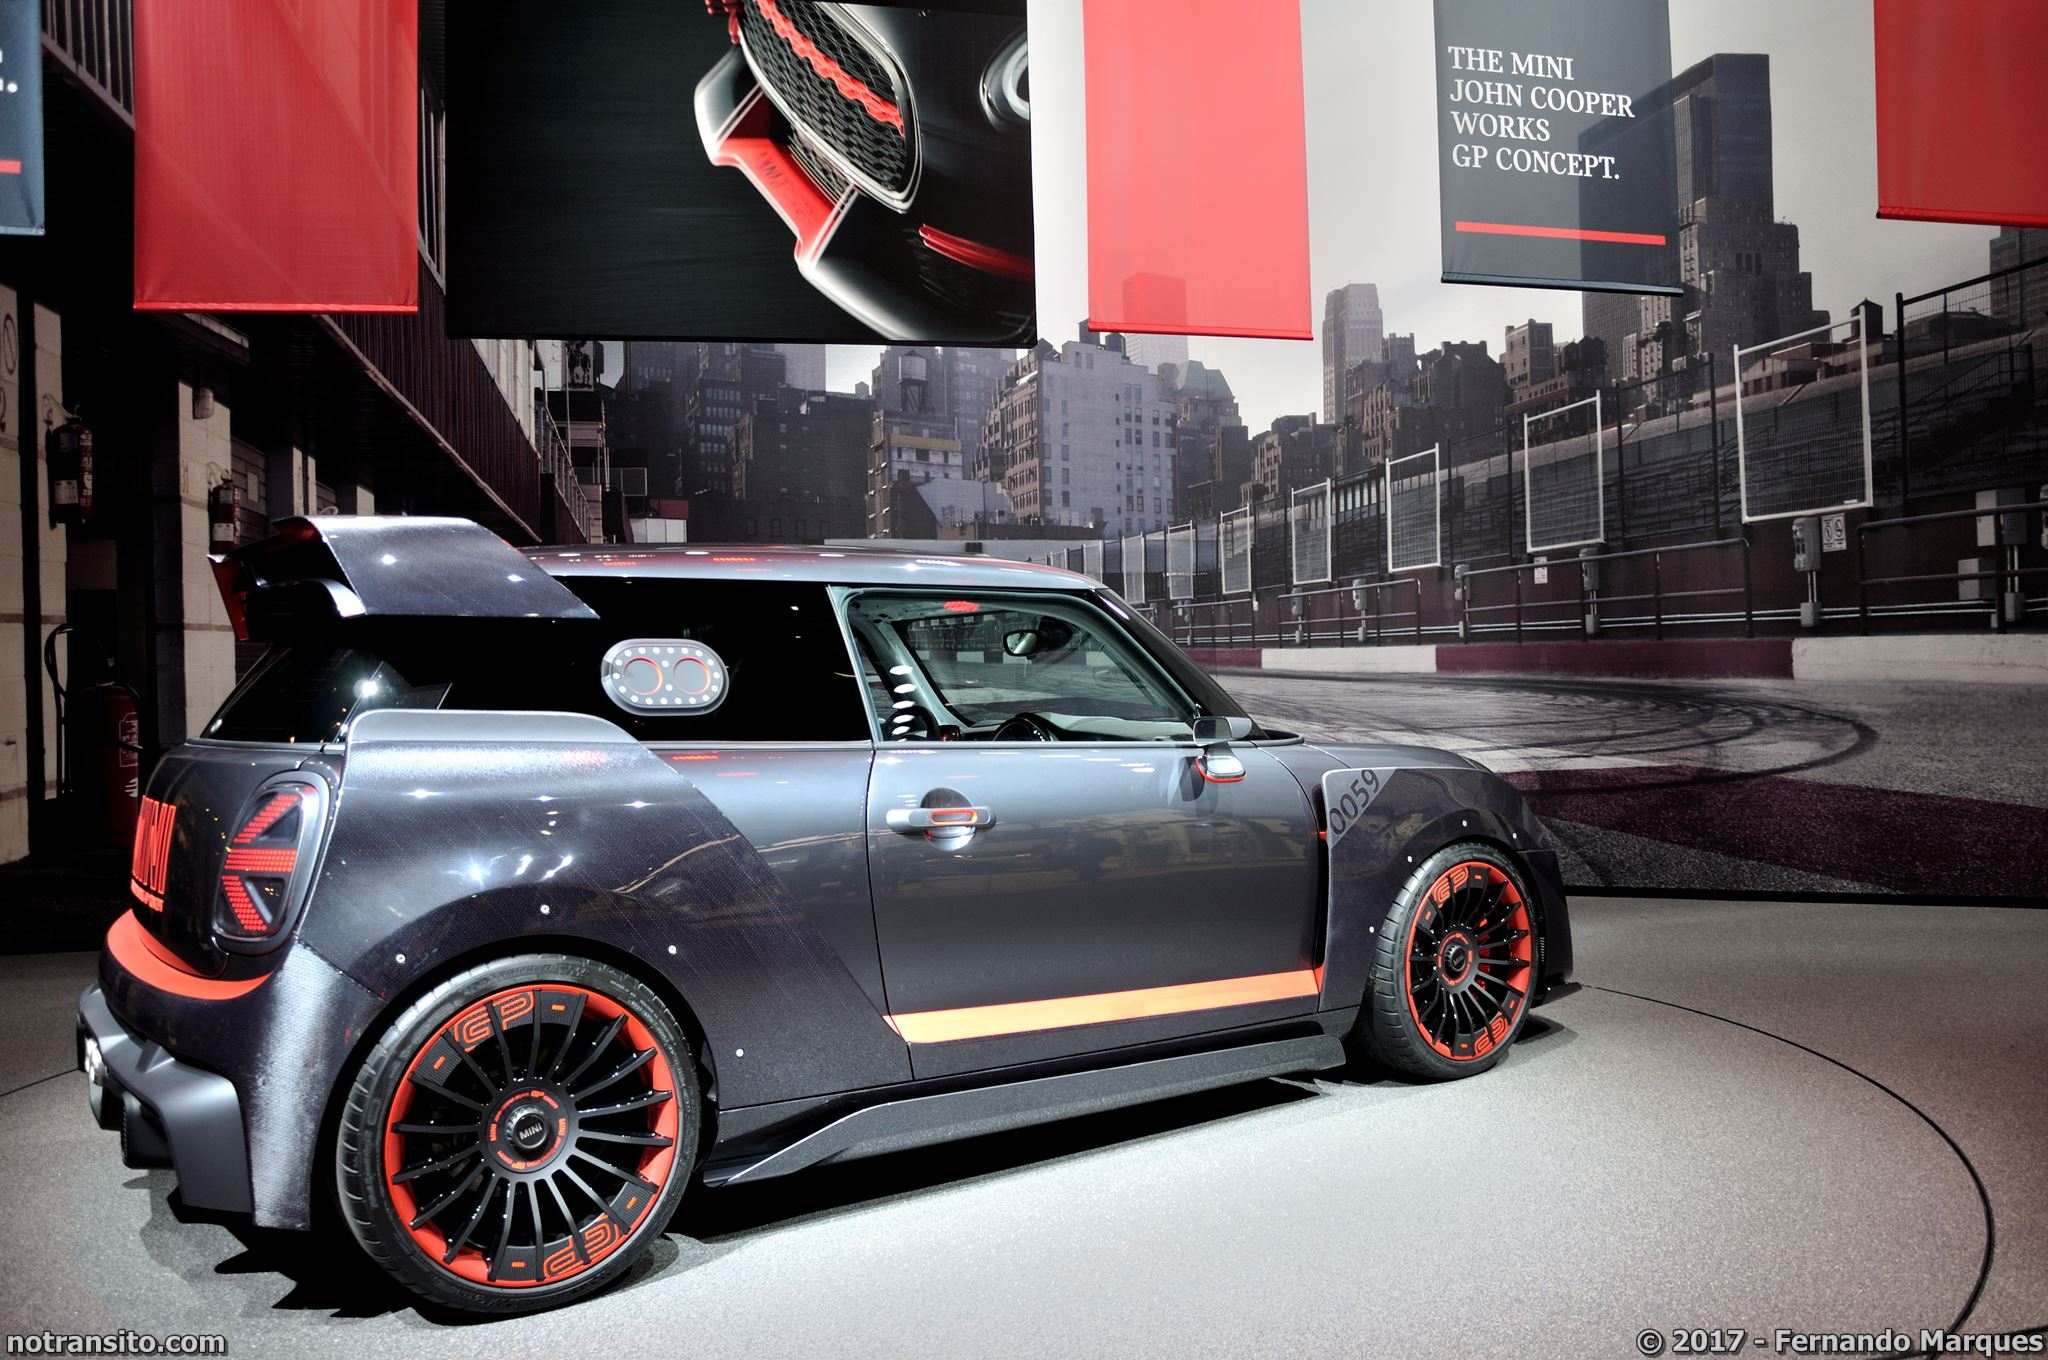 MINI-John-Cooper-Works-GP-Frankfurt-2017-003